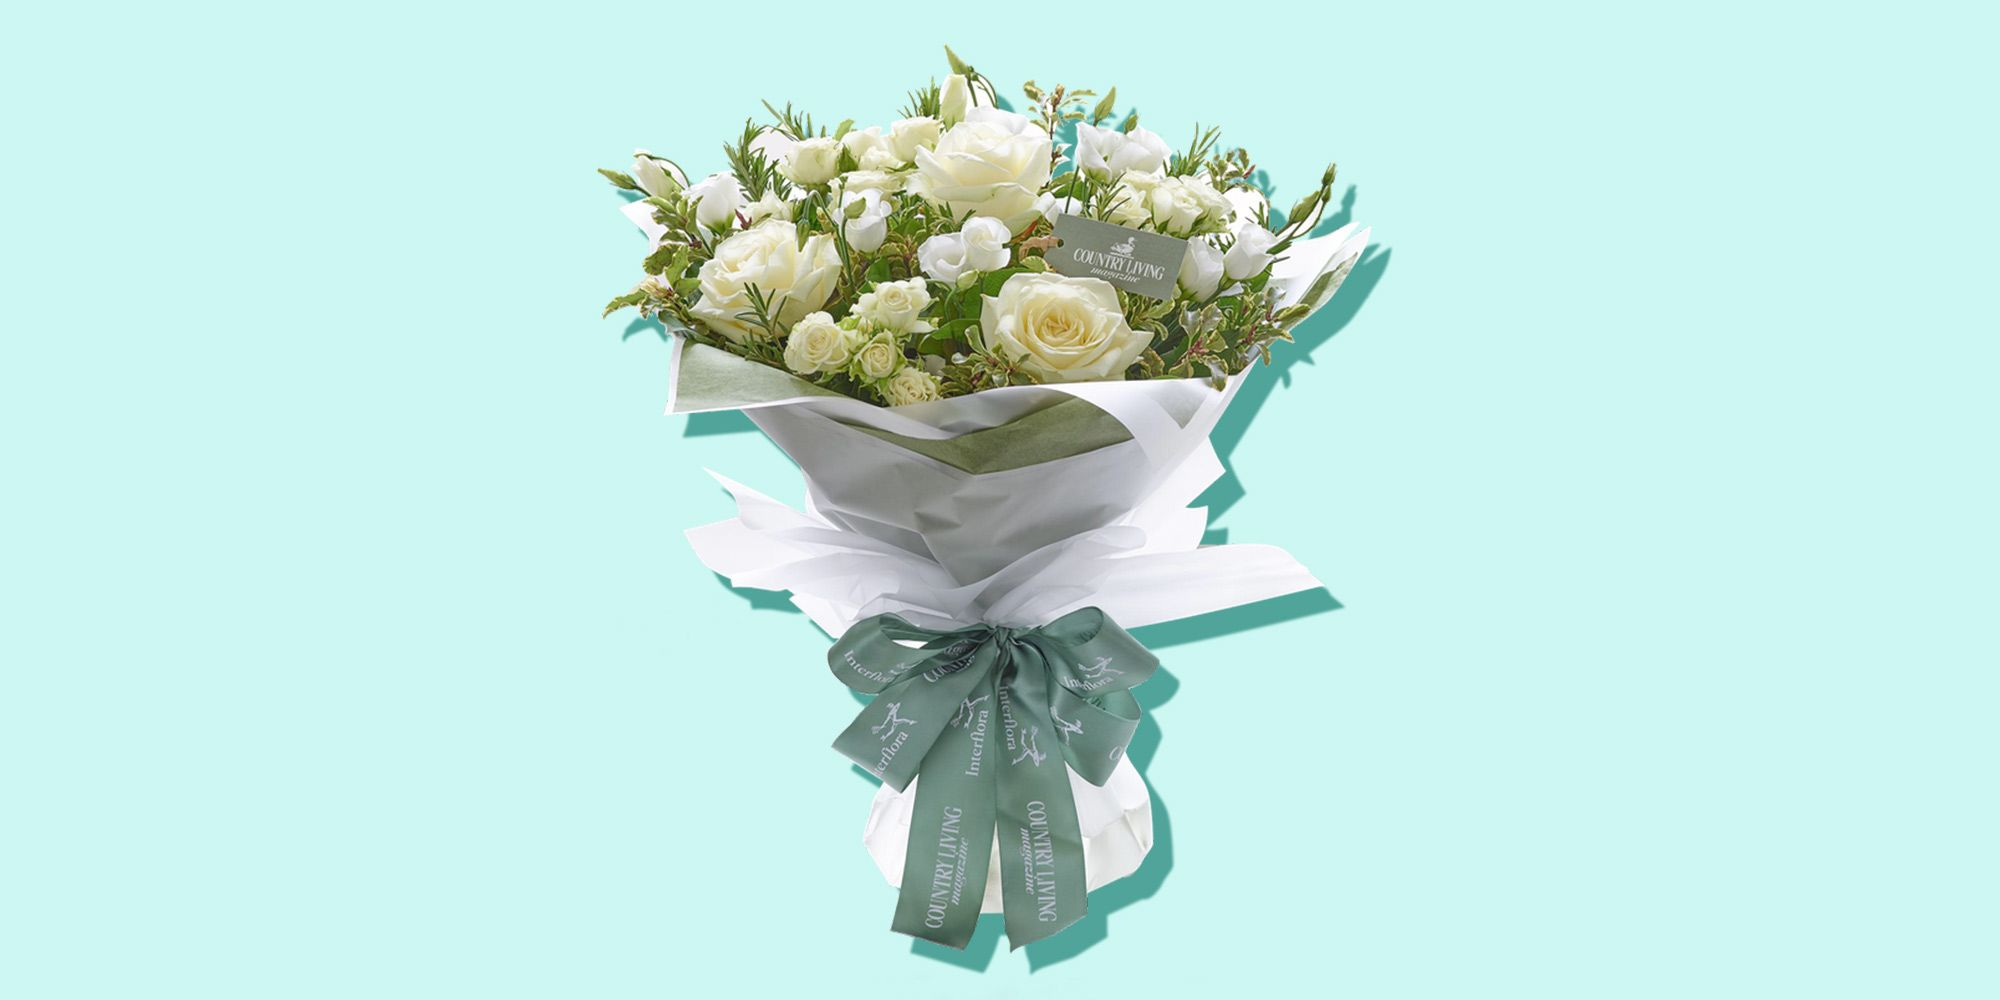 The best flower delivery services - best next-day flower delivery ... 4dace133e22a8